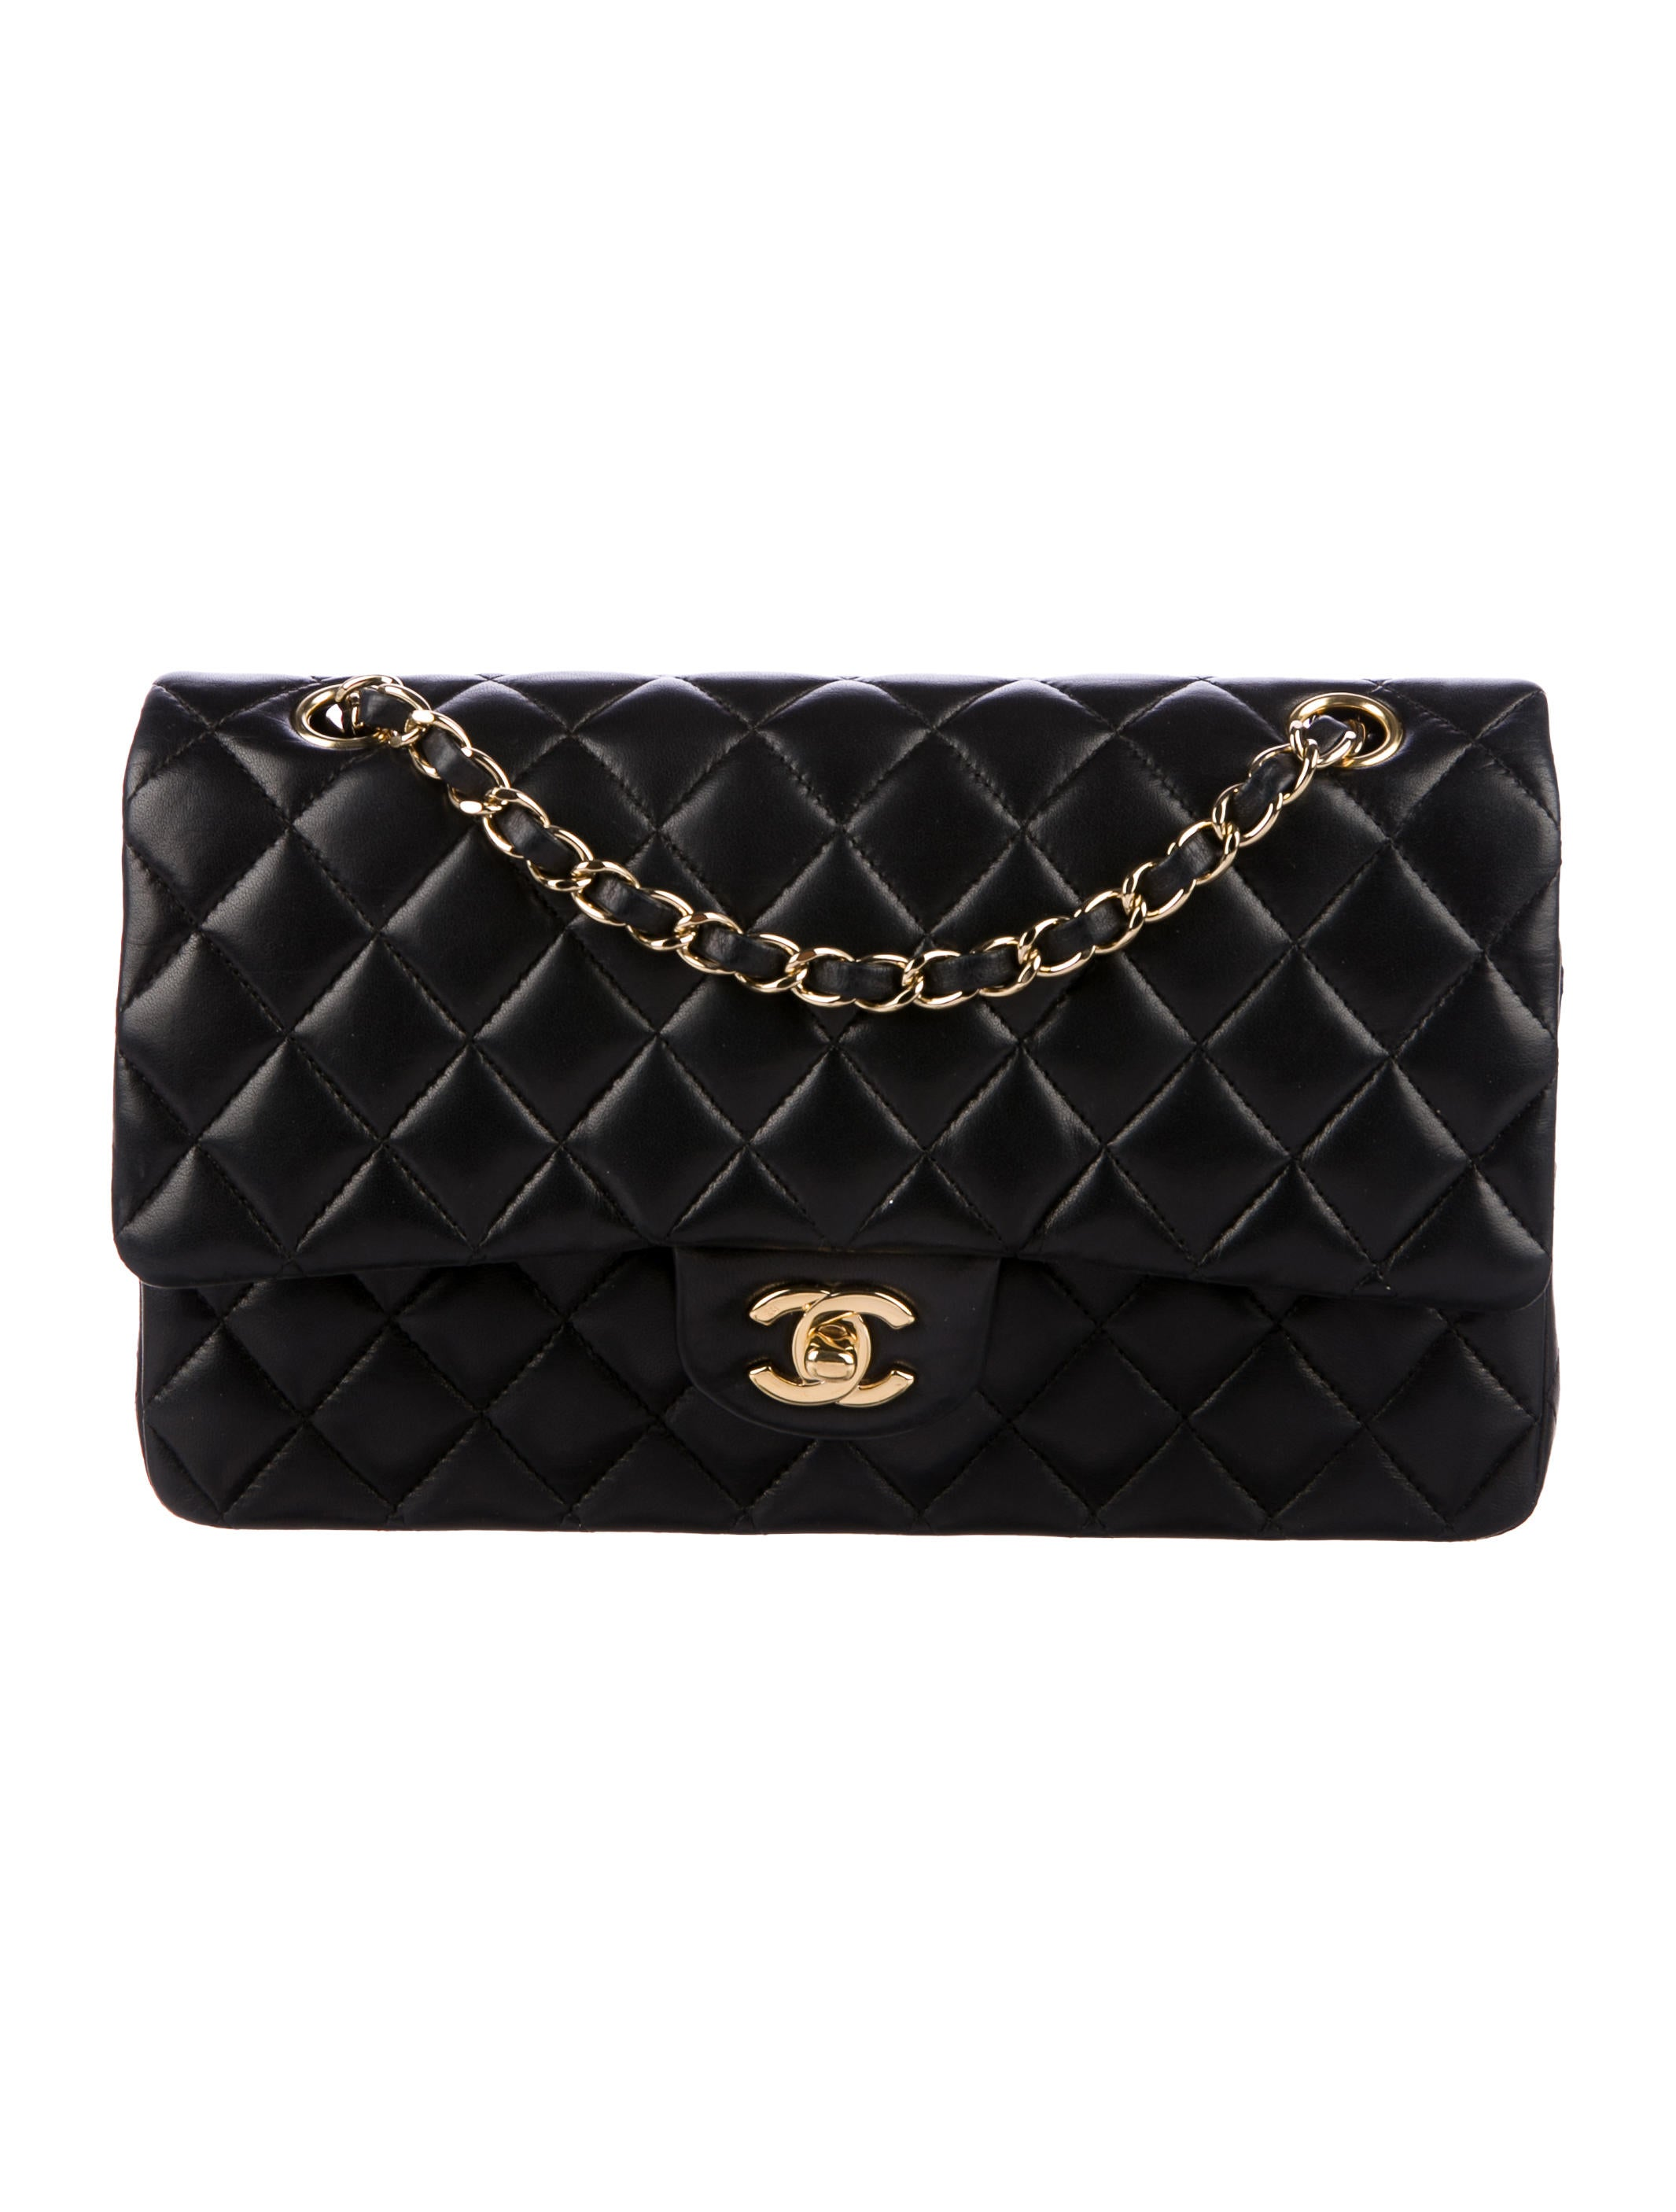 chanel medium classic flap bag handbags